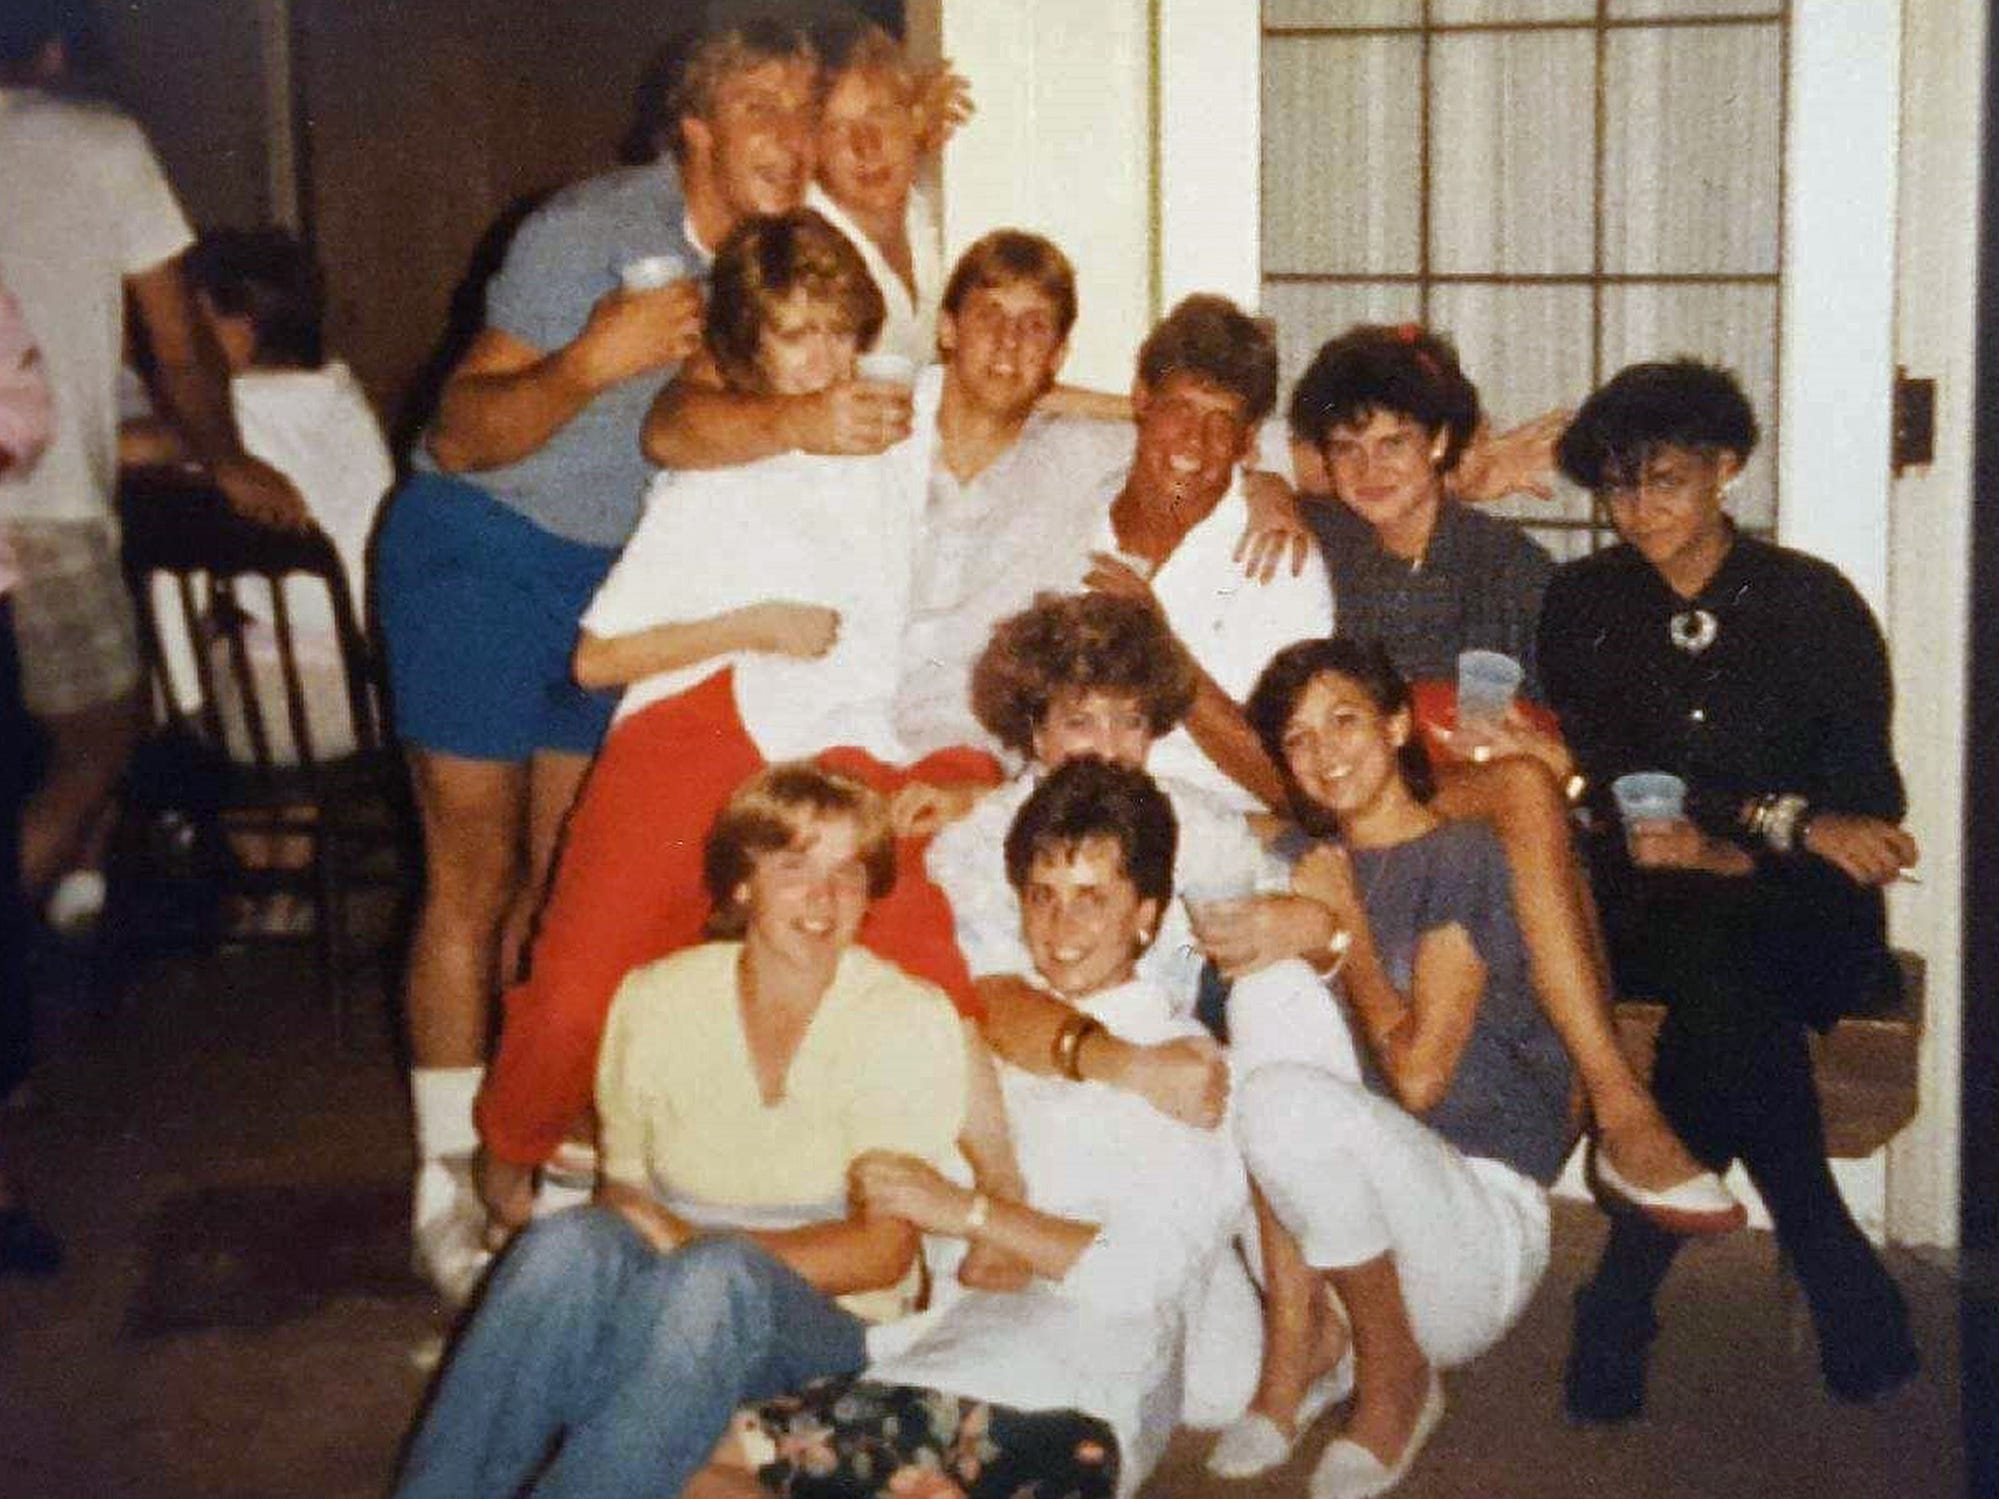 Friends from various high schools filled the O'Neill house in Milwaukee's Washington Heights neighborhood for numerous parties in the 1980s.The house will be sold after one final keg party on Saturday.